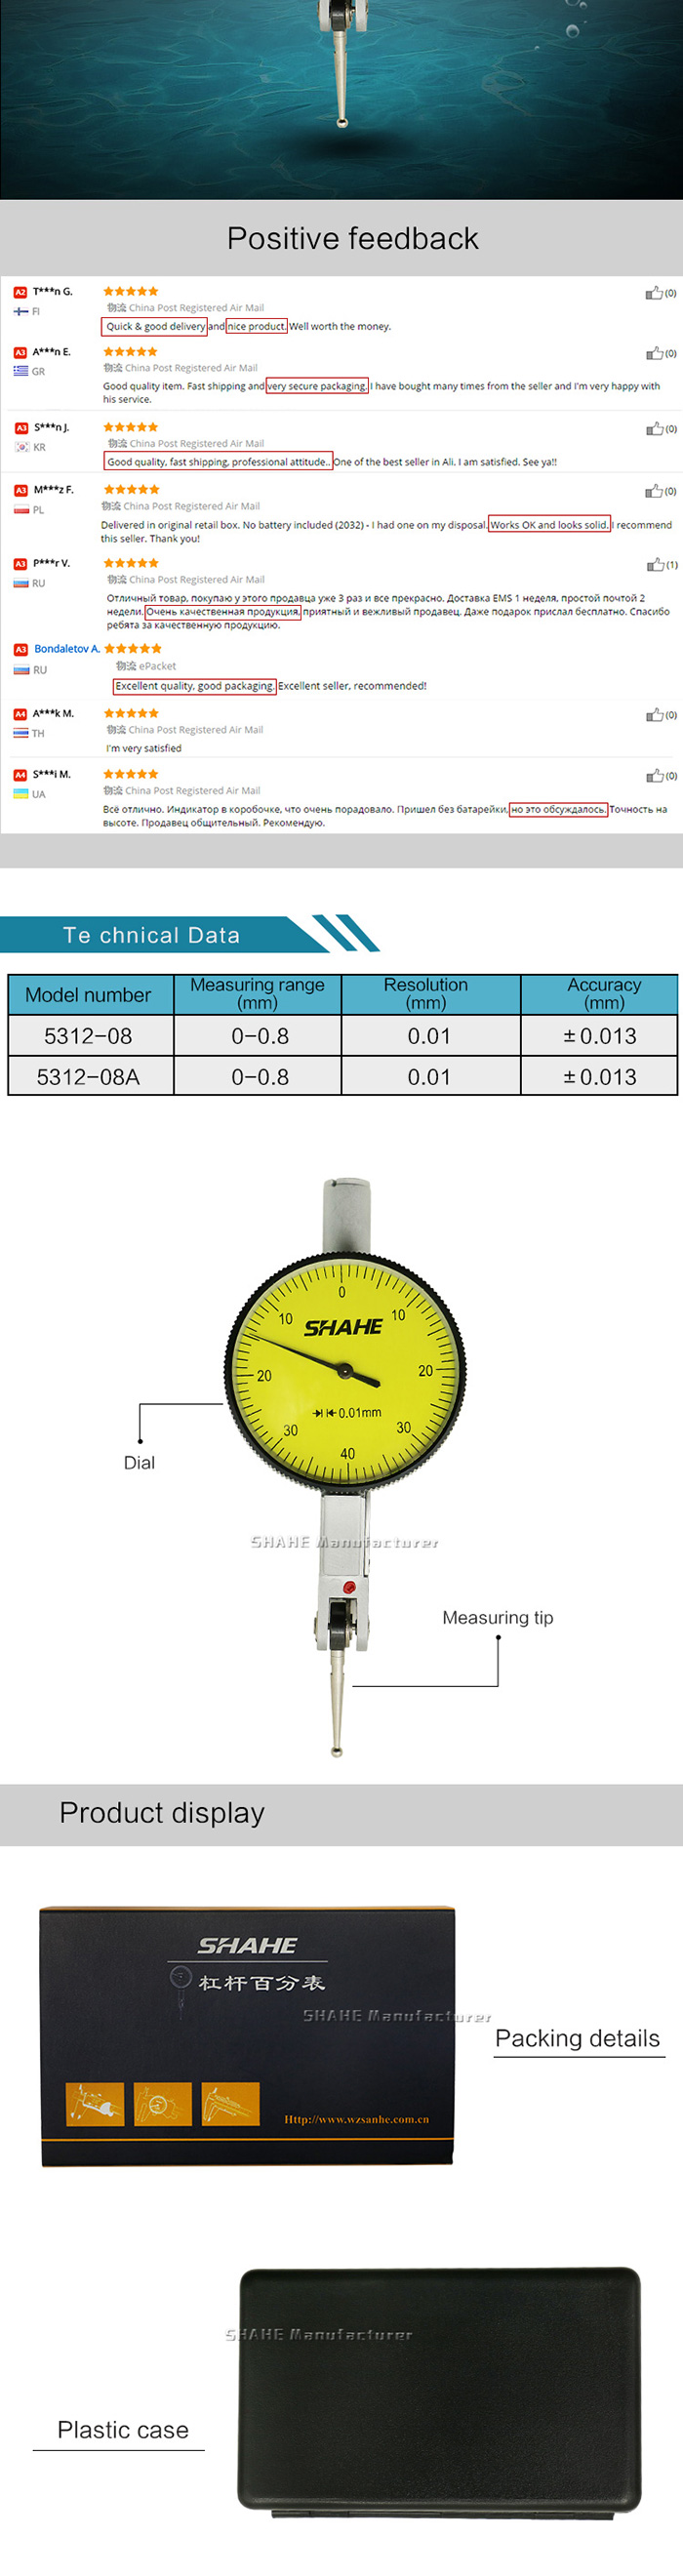 0-0.8mm 0.01mm Graduation Accuracy Industrial Lever/' Dial Indicator New Trendy